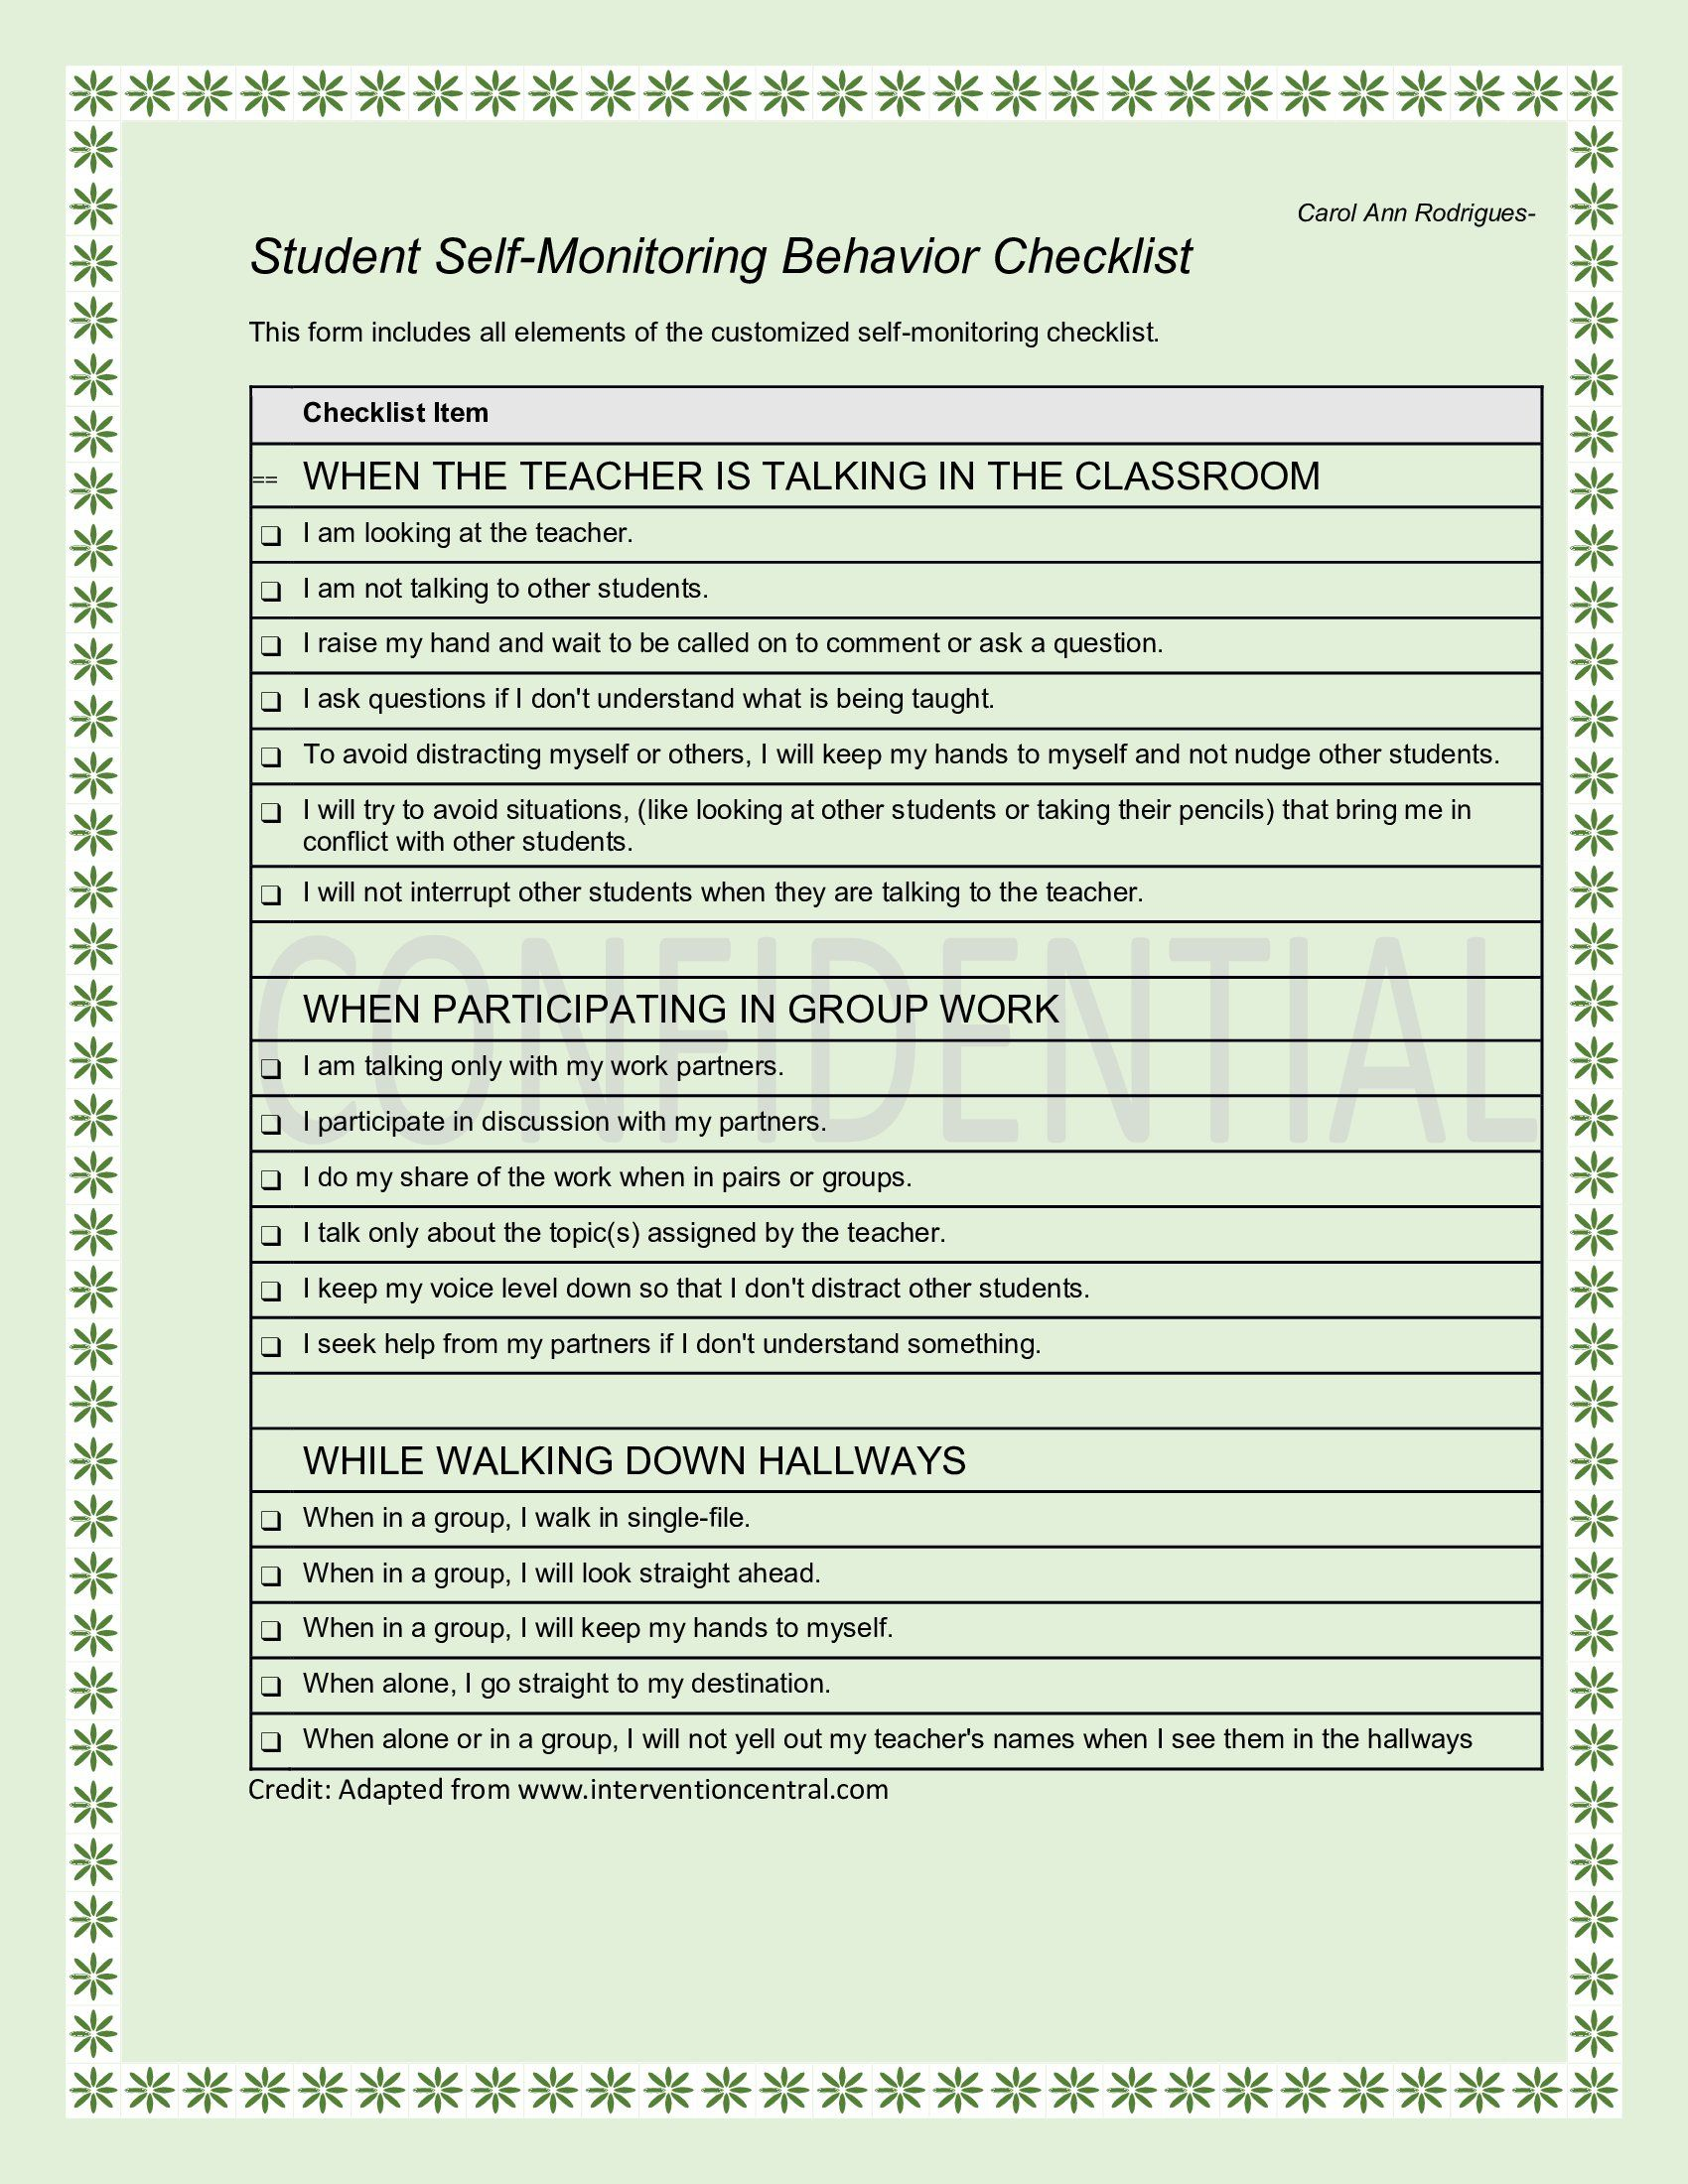 This is the self monitoring behavior checklist I made for the